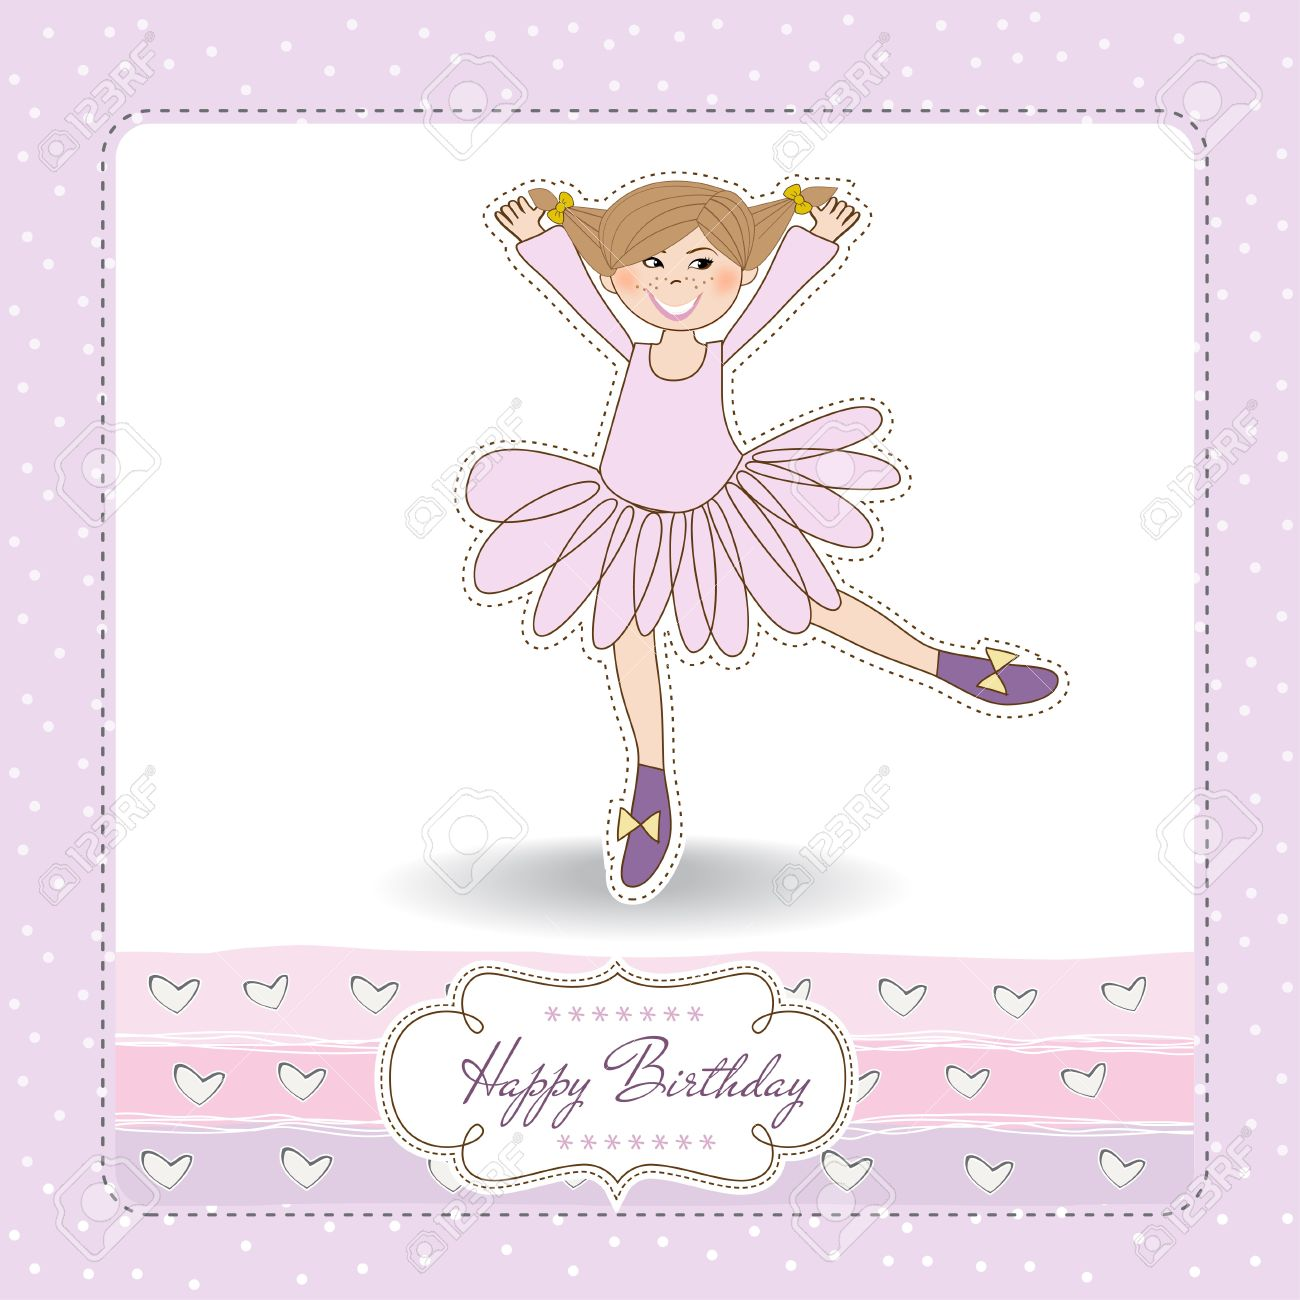 Sweet Girl Birthday Greeting Card Stock Vector - 11021807